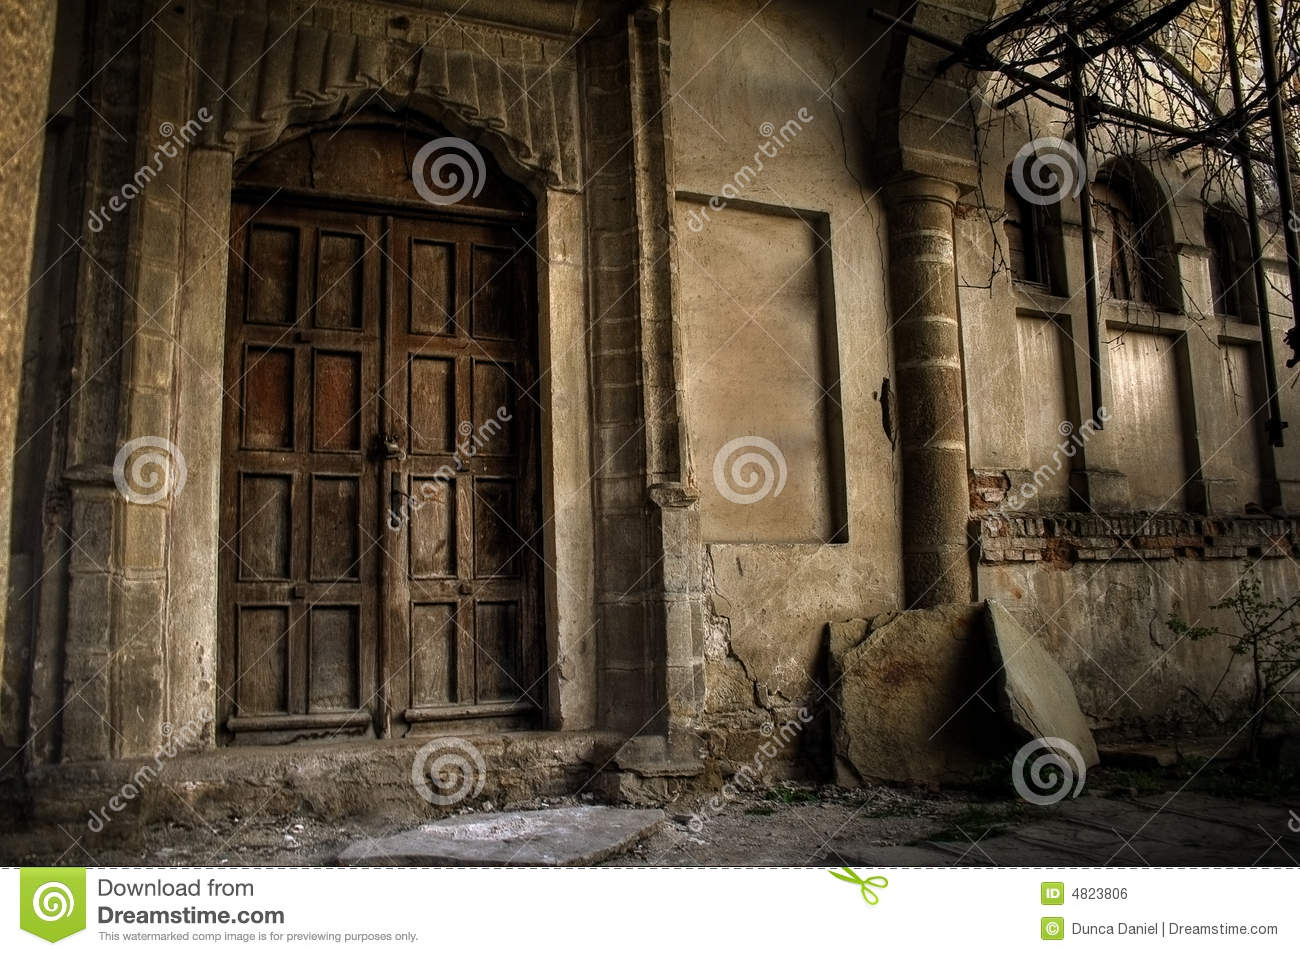 Haunted house exterior of vintage old building stock for 13 door haunted house